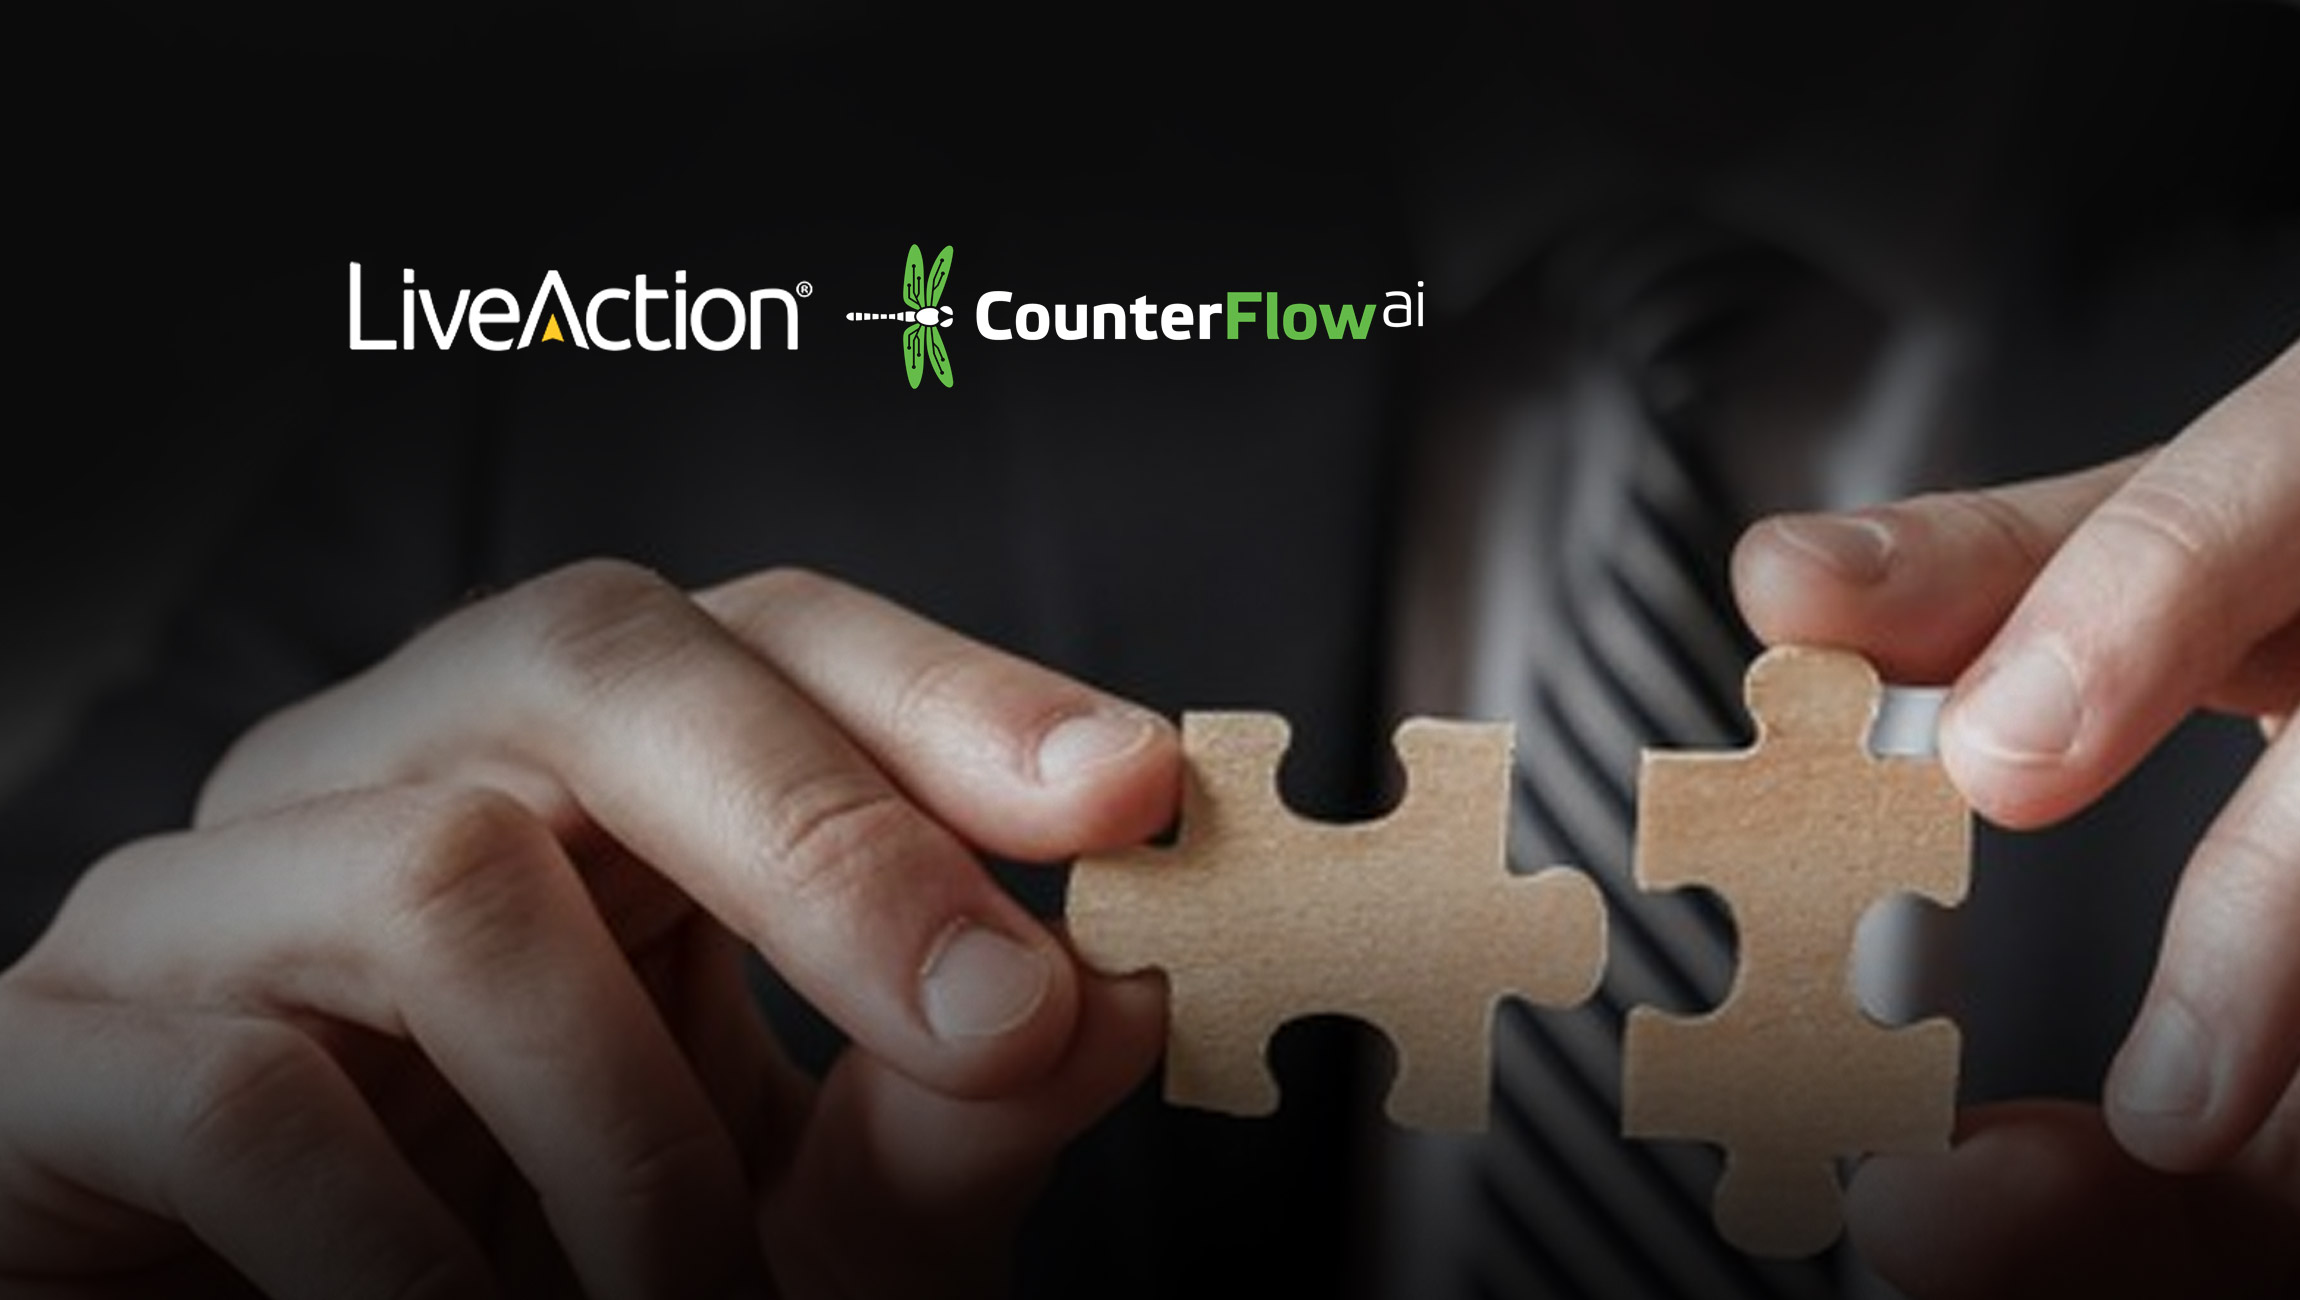 LiveAction Acquires CounterFlow AI to Expand Network Security Offerings